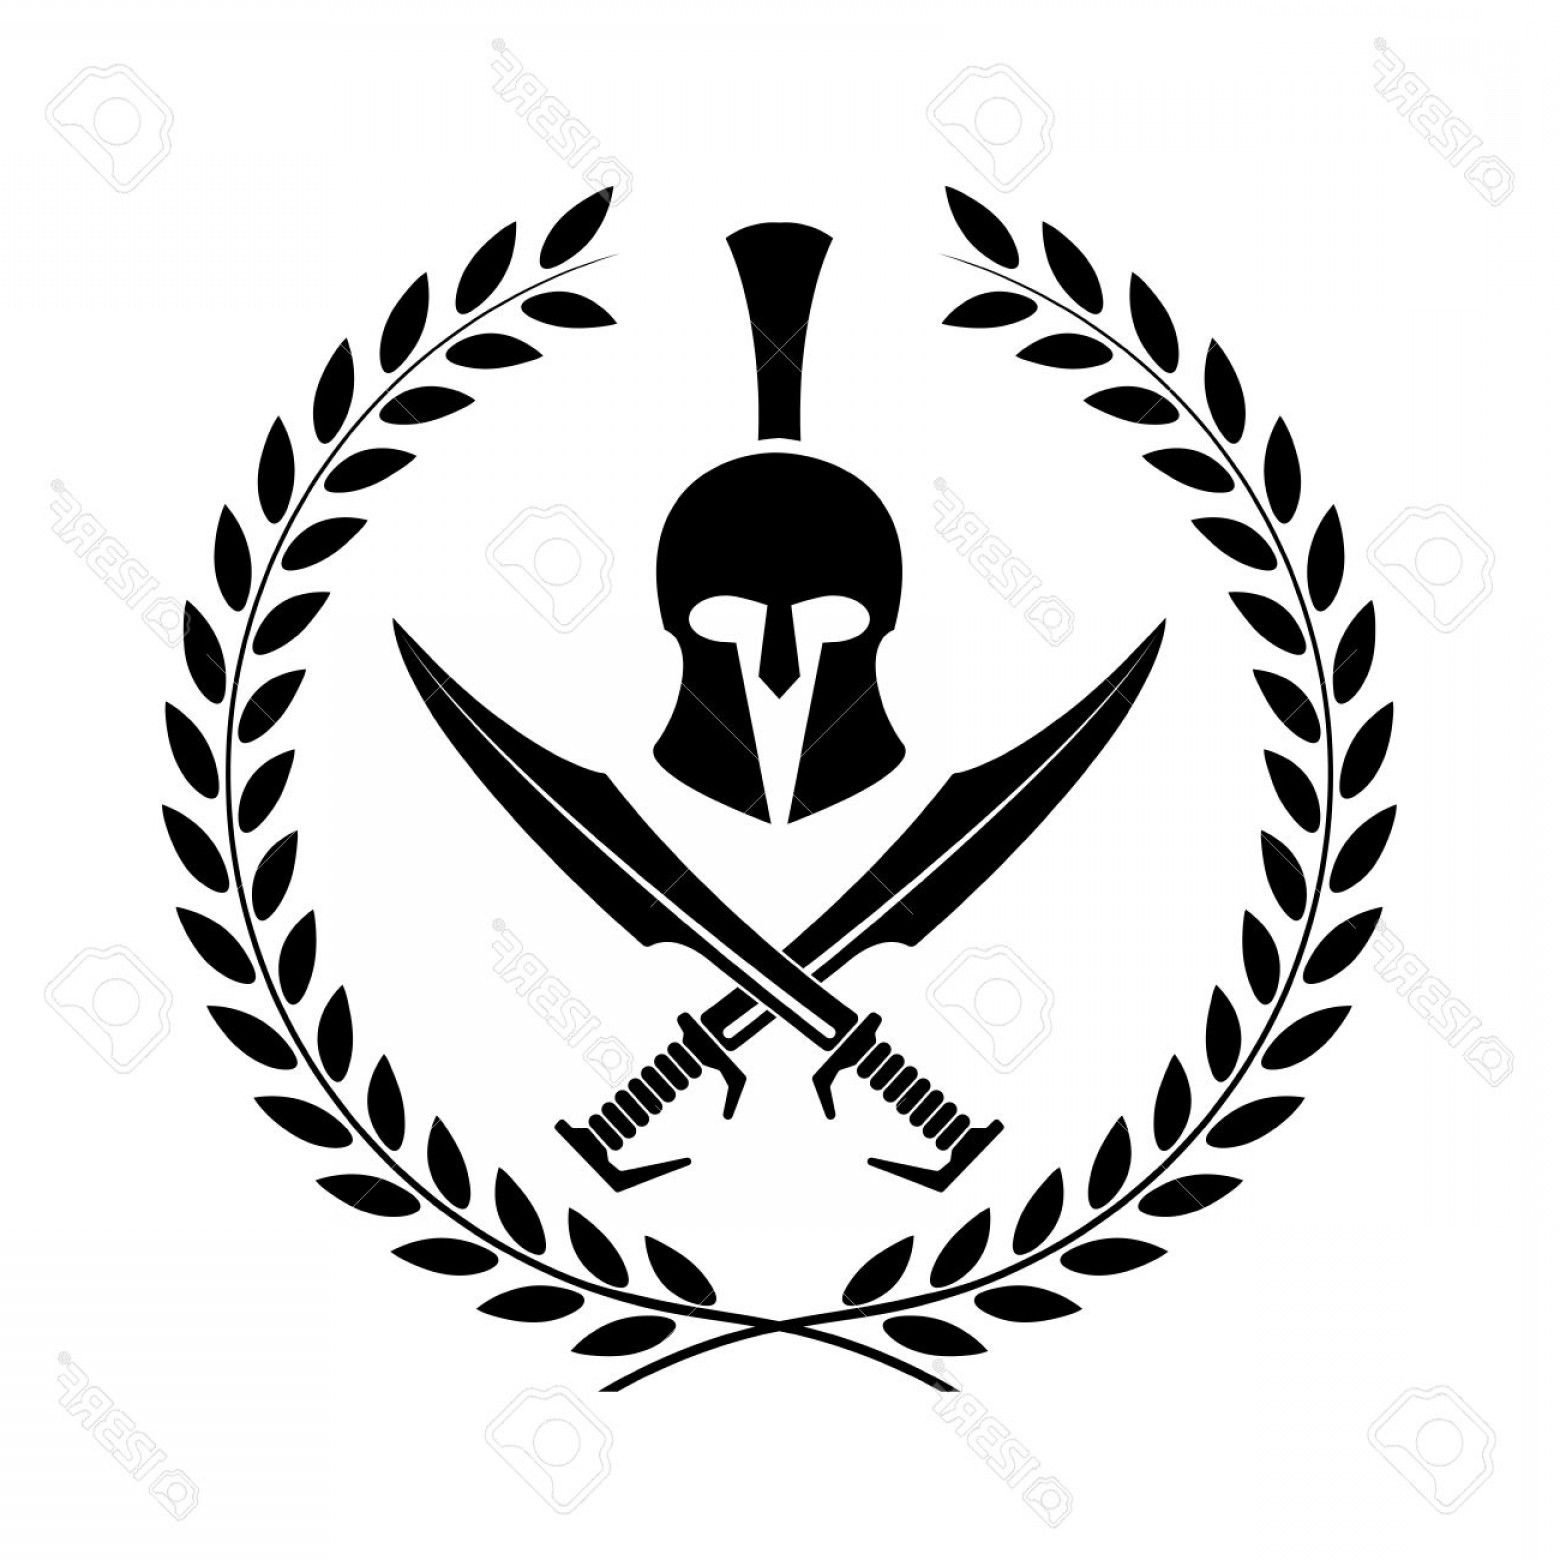 1560x1560 Warrior Helmet Vector Lazttweet